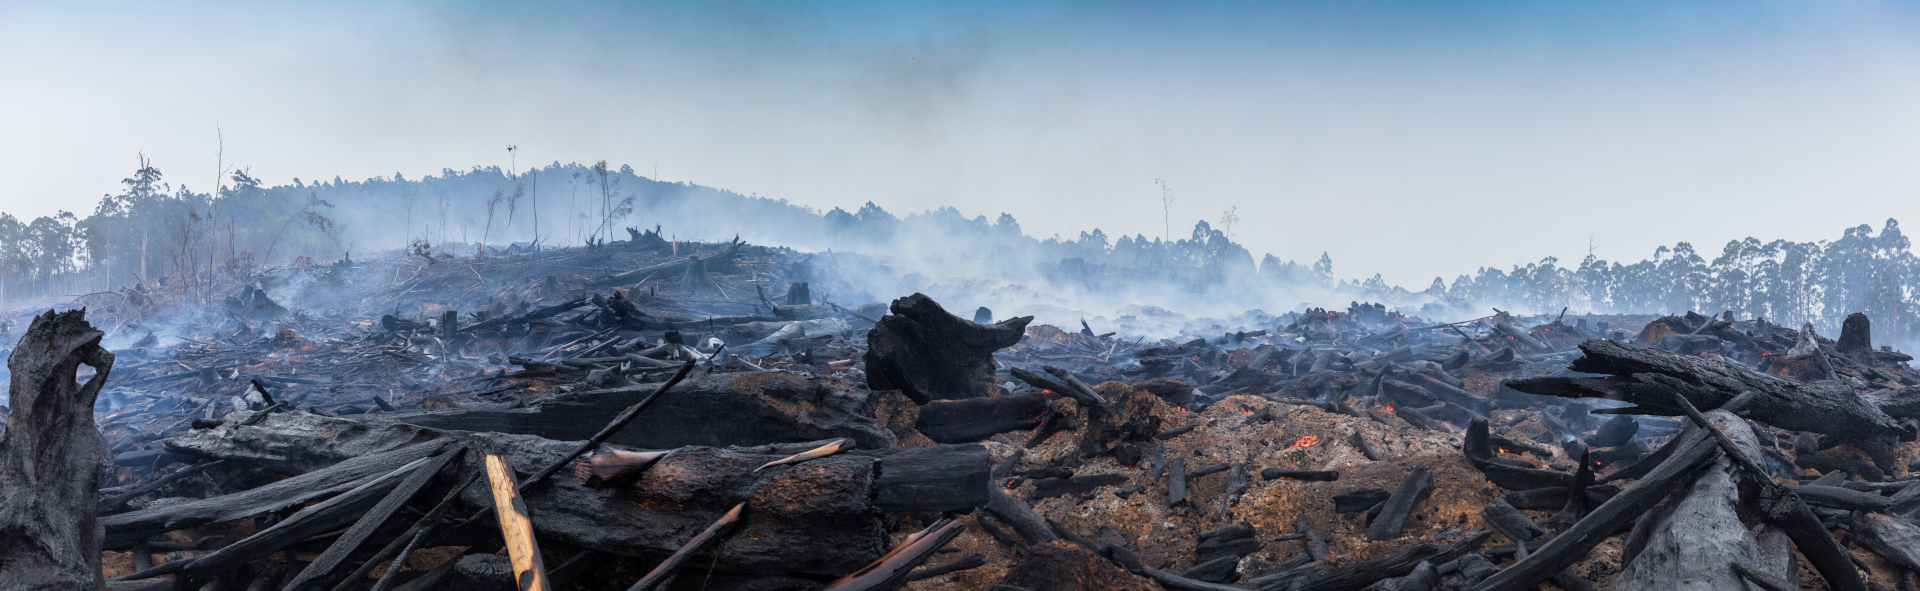 After the Bushfires